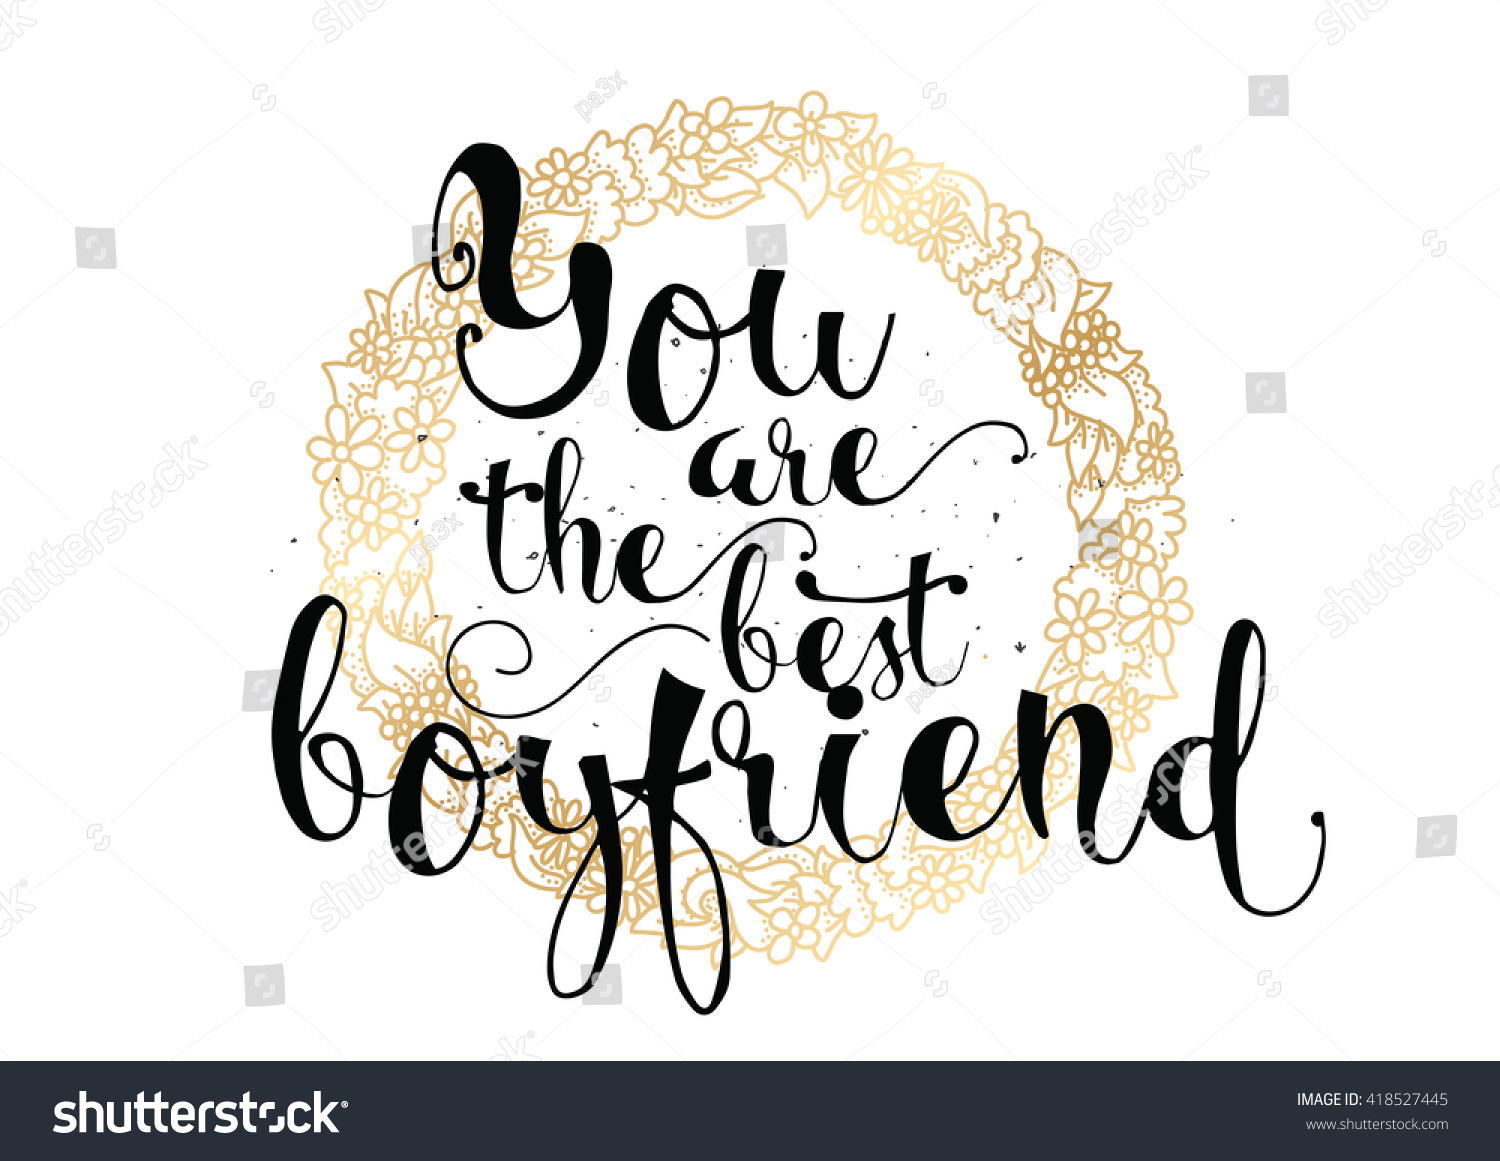 You are the best boyfriend inscription greeting card with